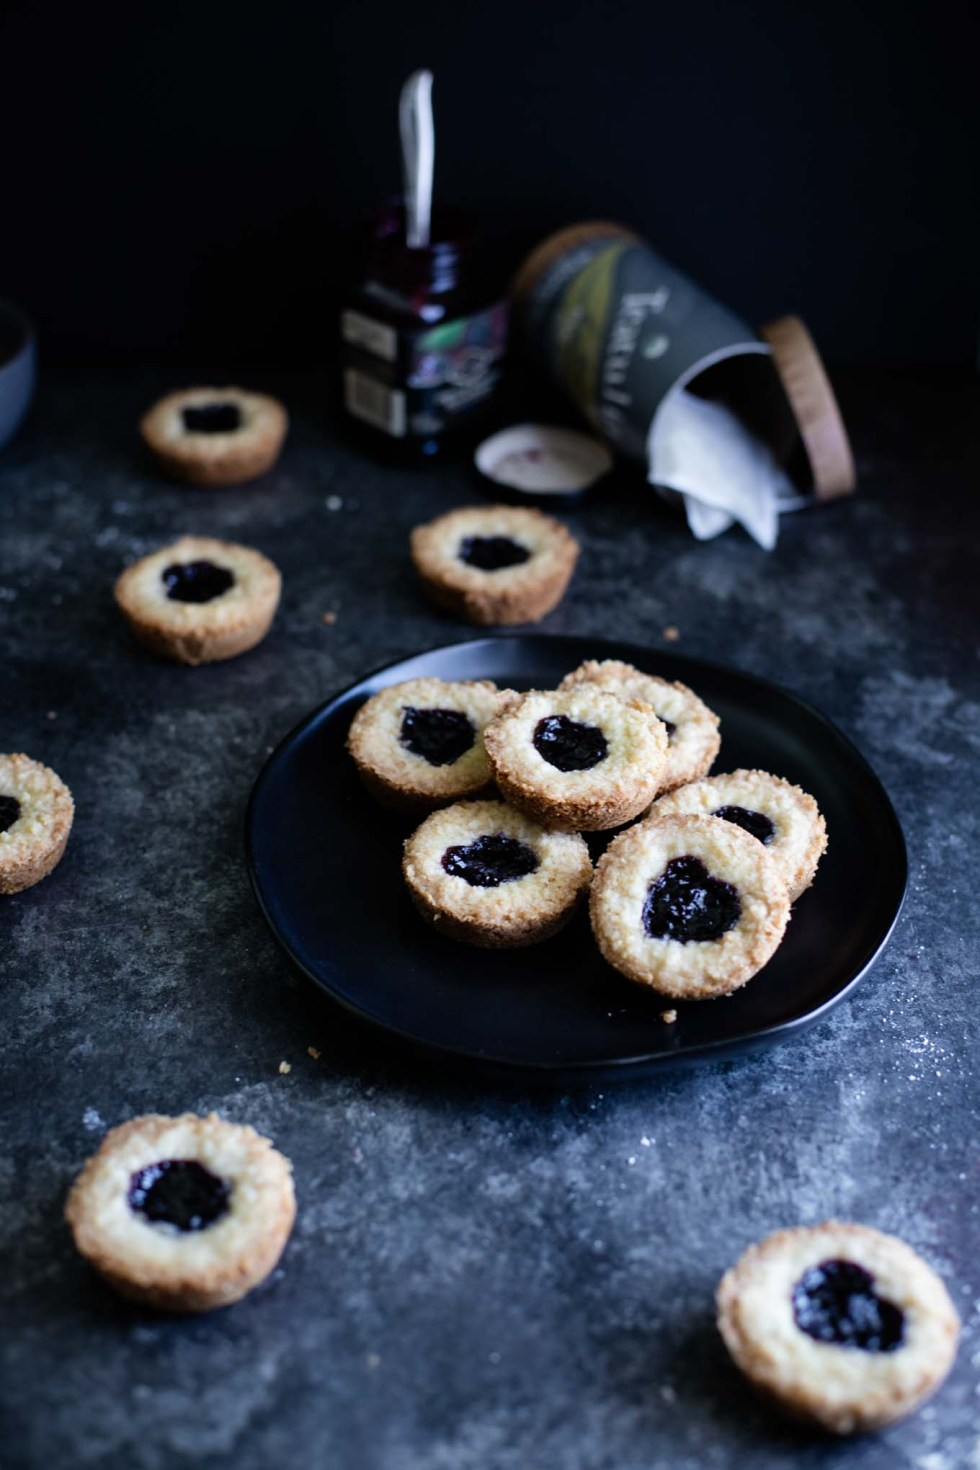 A black plate full of earl grey shortbread cookies with blackberry jam